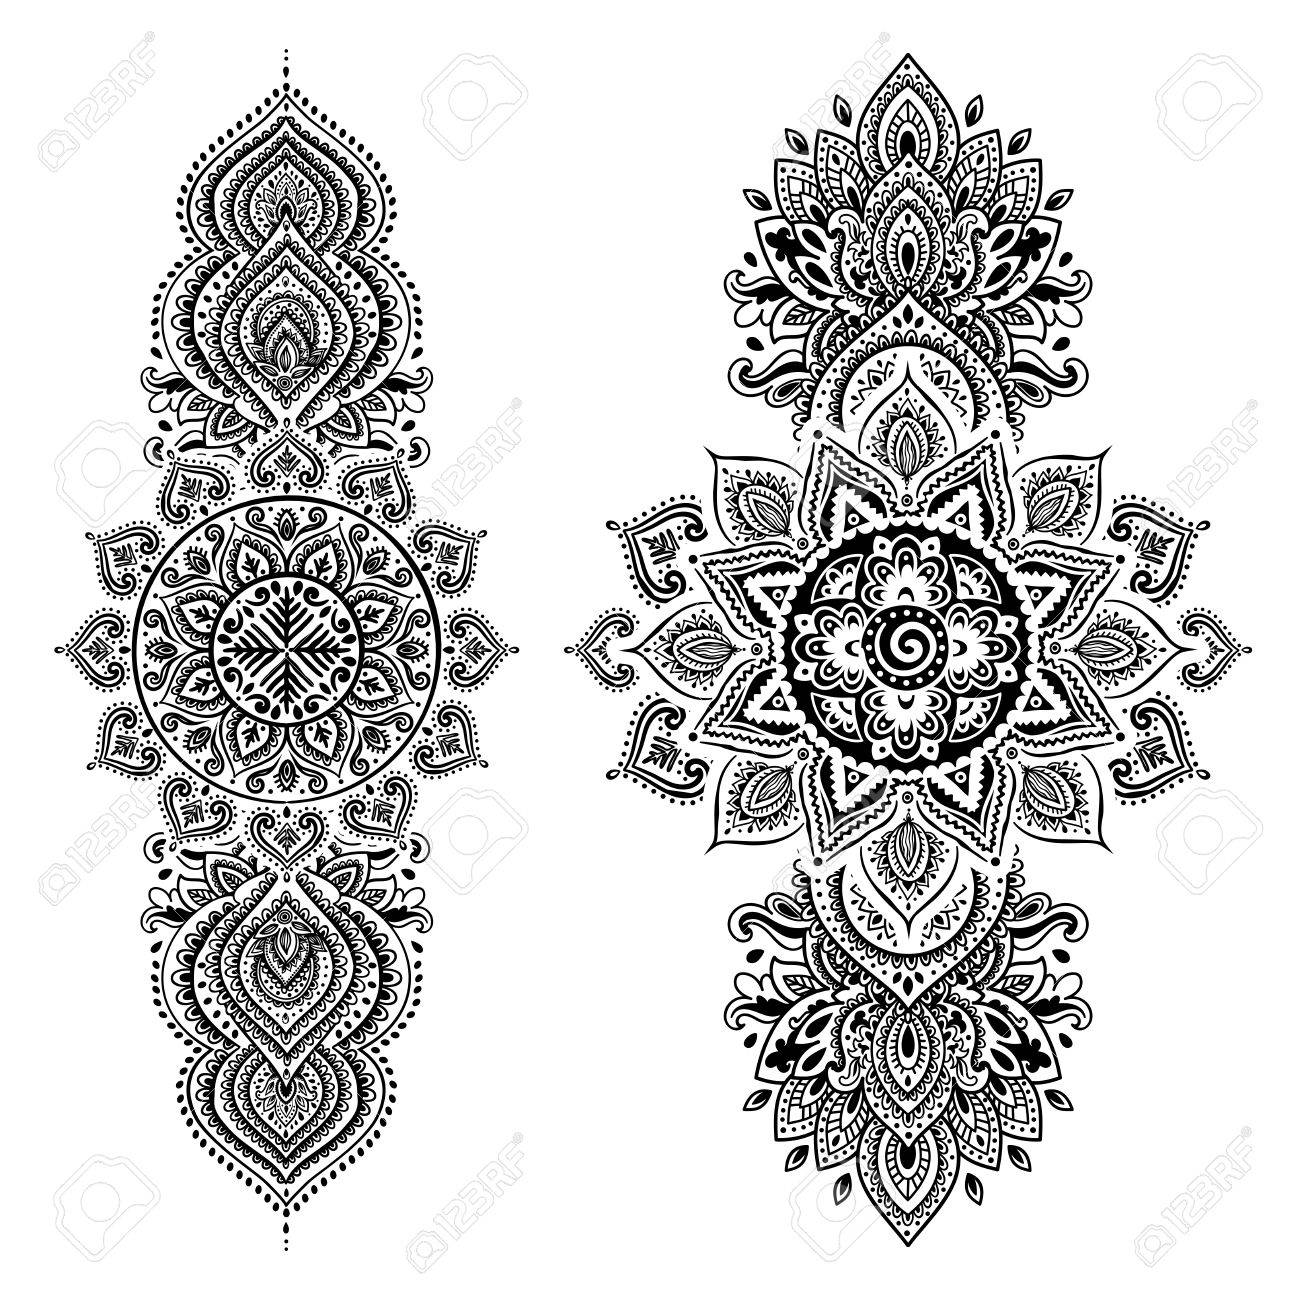 Set Of Ornamental Indian Elements And Symbols Royalty Free Cliparts